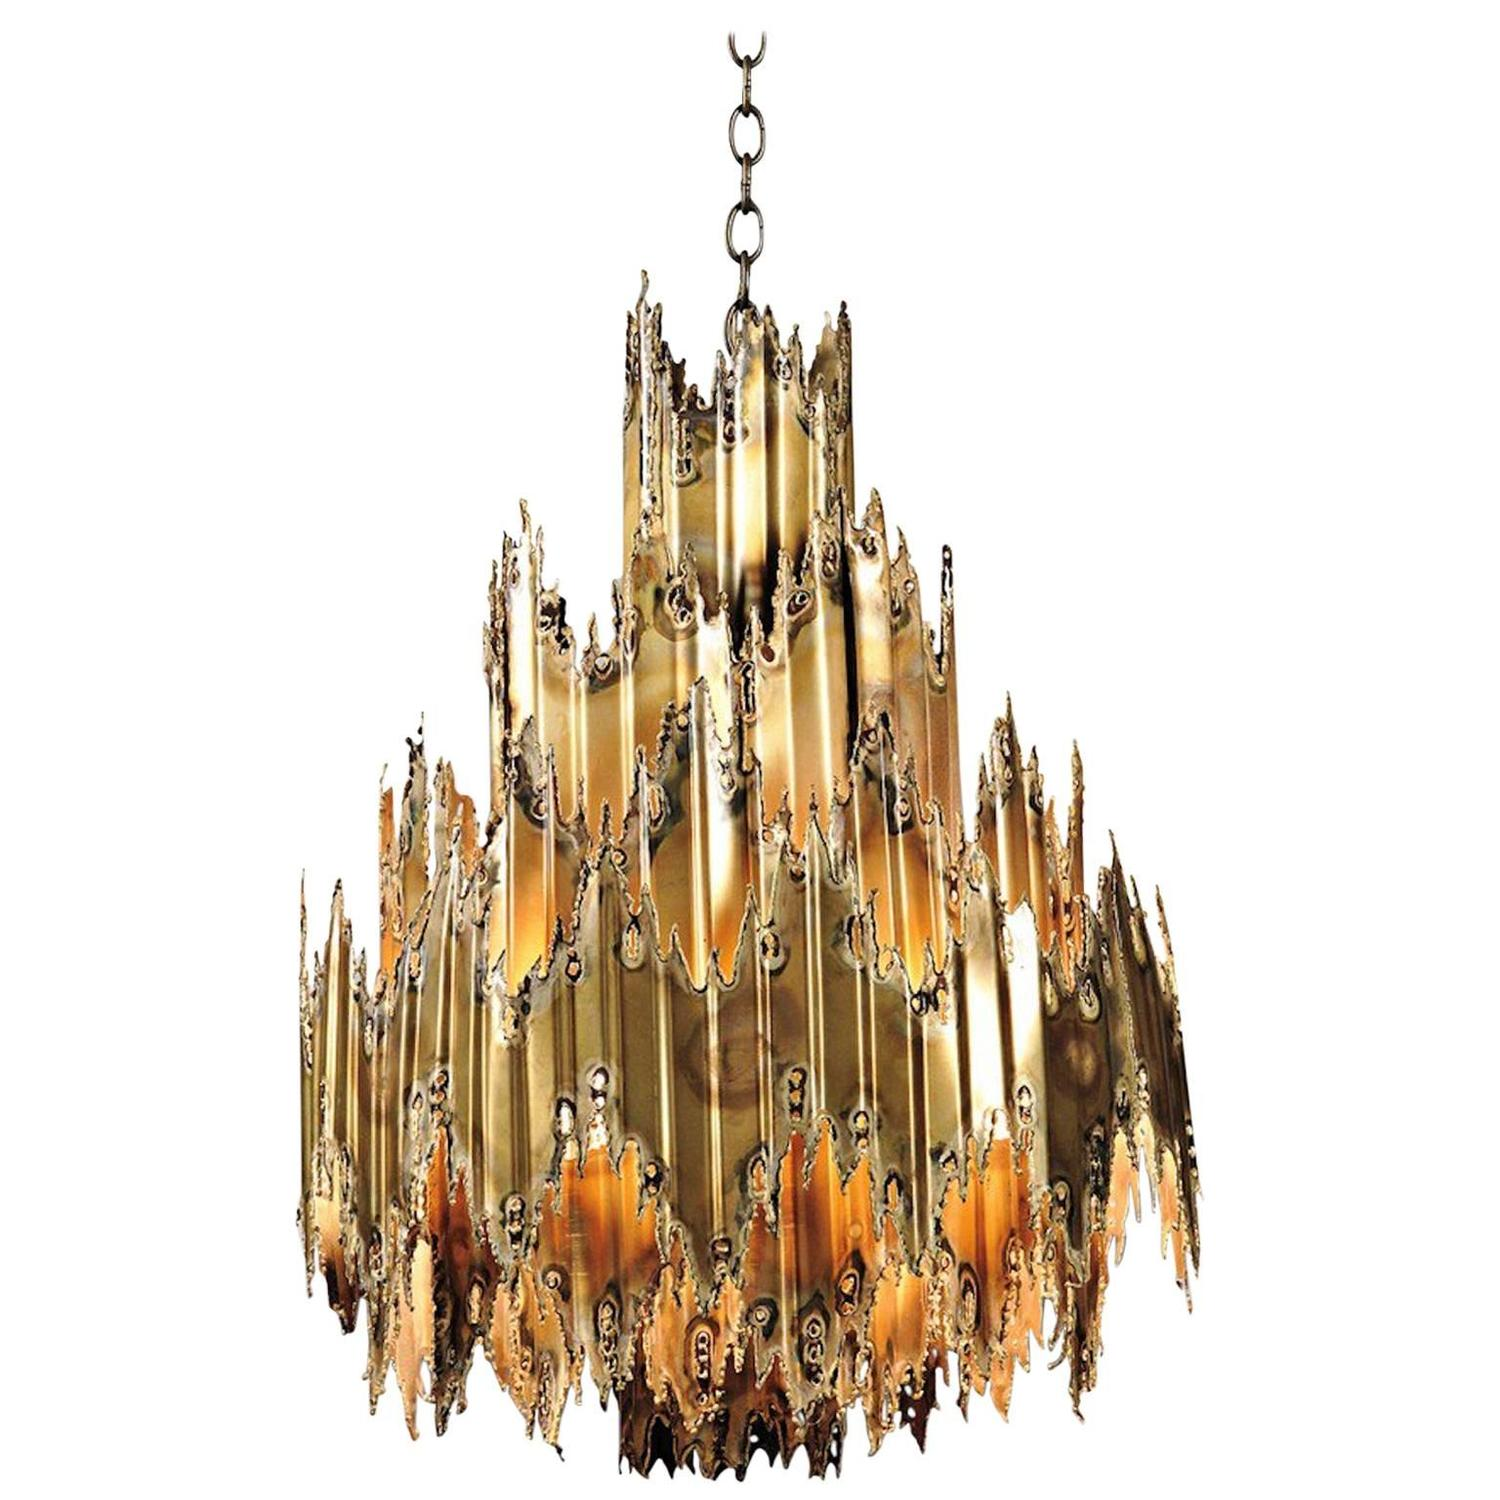 Brutalist Chandelier By T A Greene For Feldman Lighting